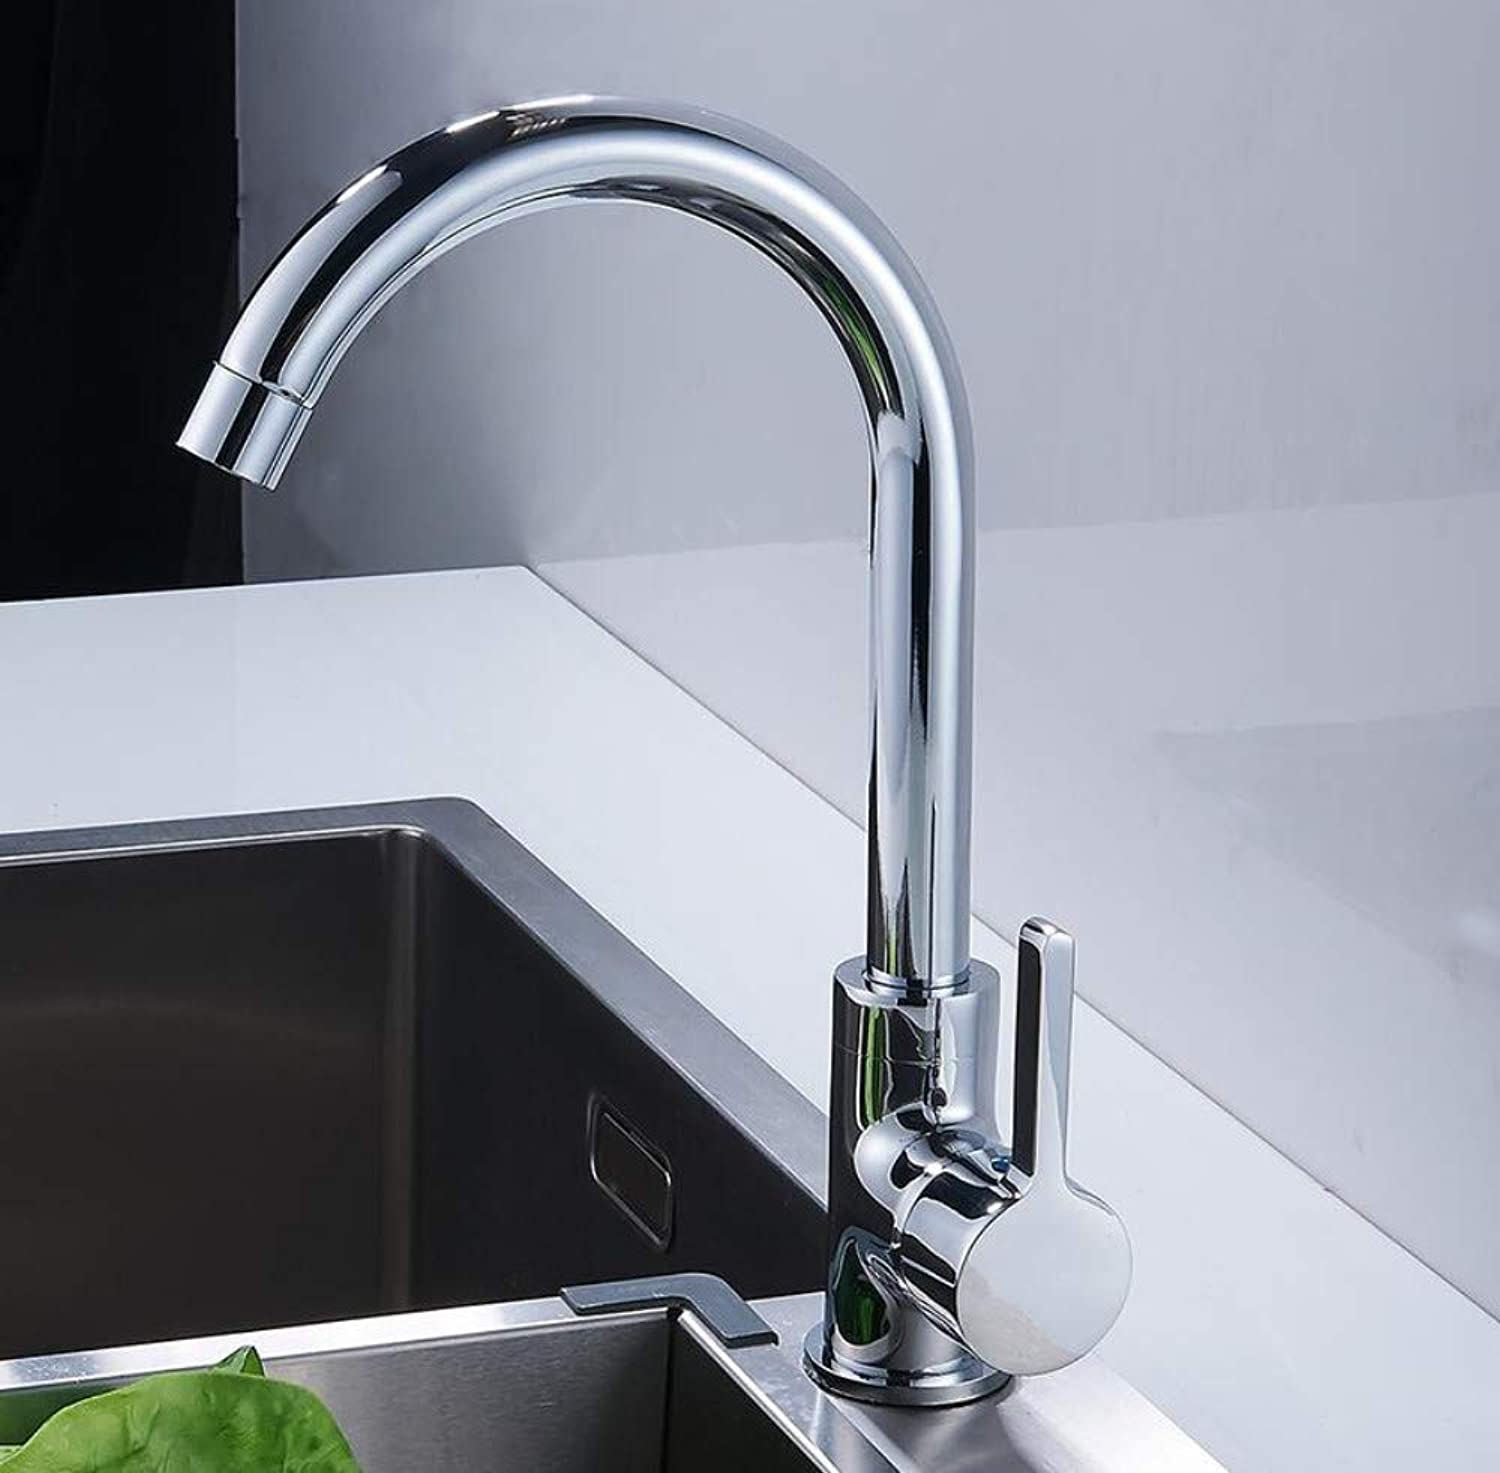 Bathroom Faucet Hot and Cold Water Mixer Tap Kitchen Faucet Wall Mounted Brushed 360 Swivel Basin Faucet